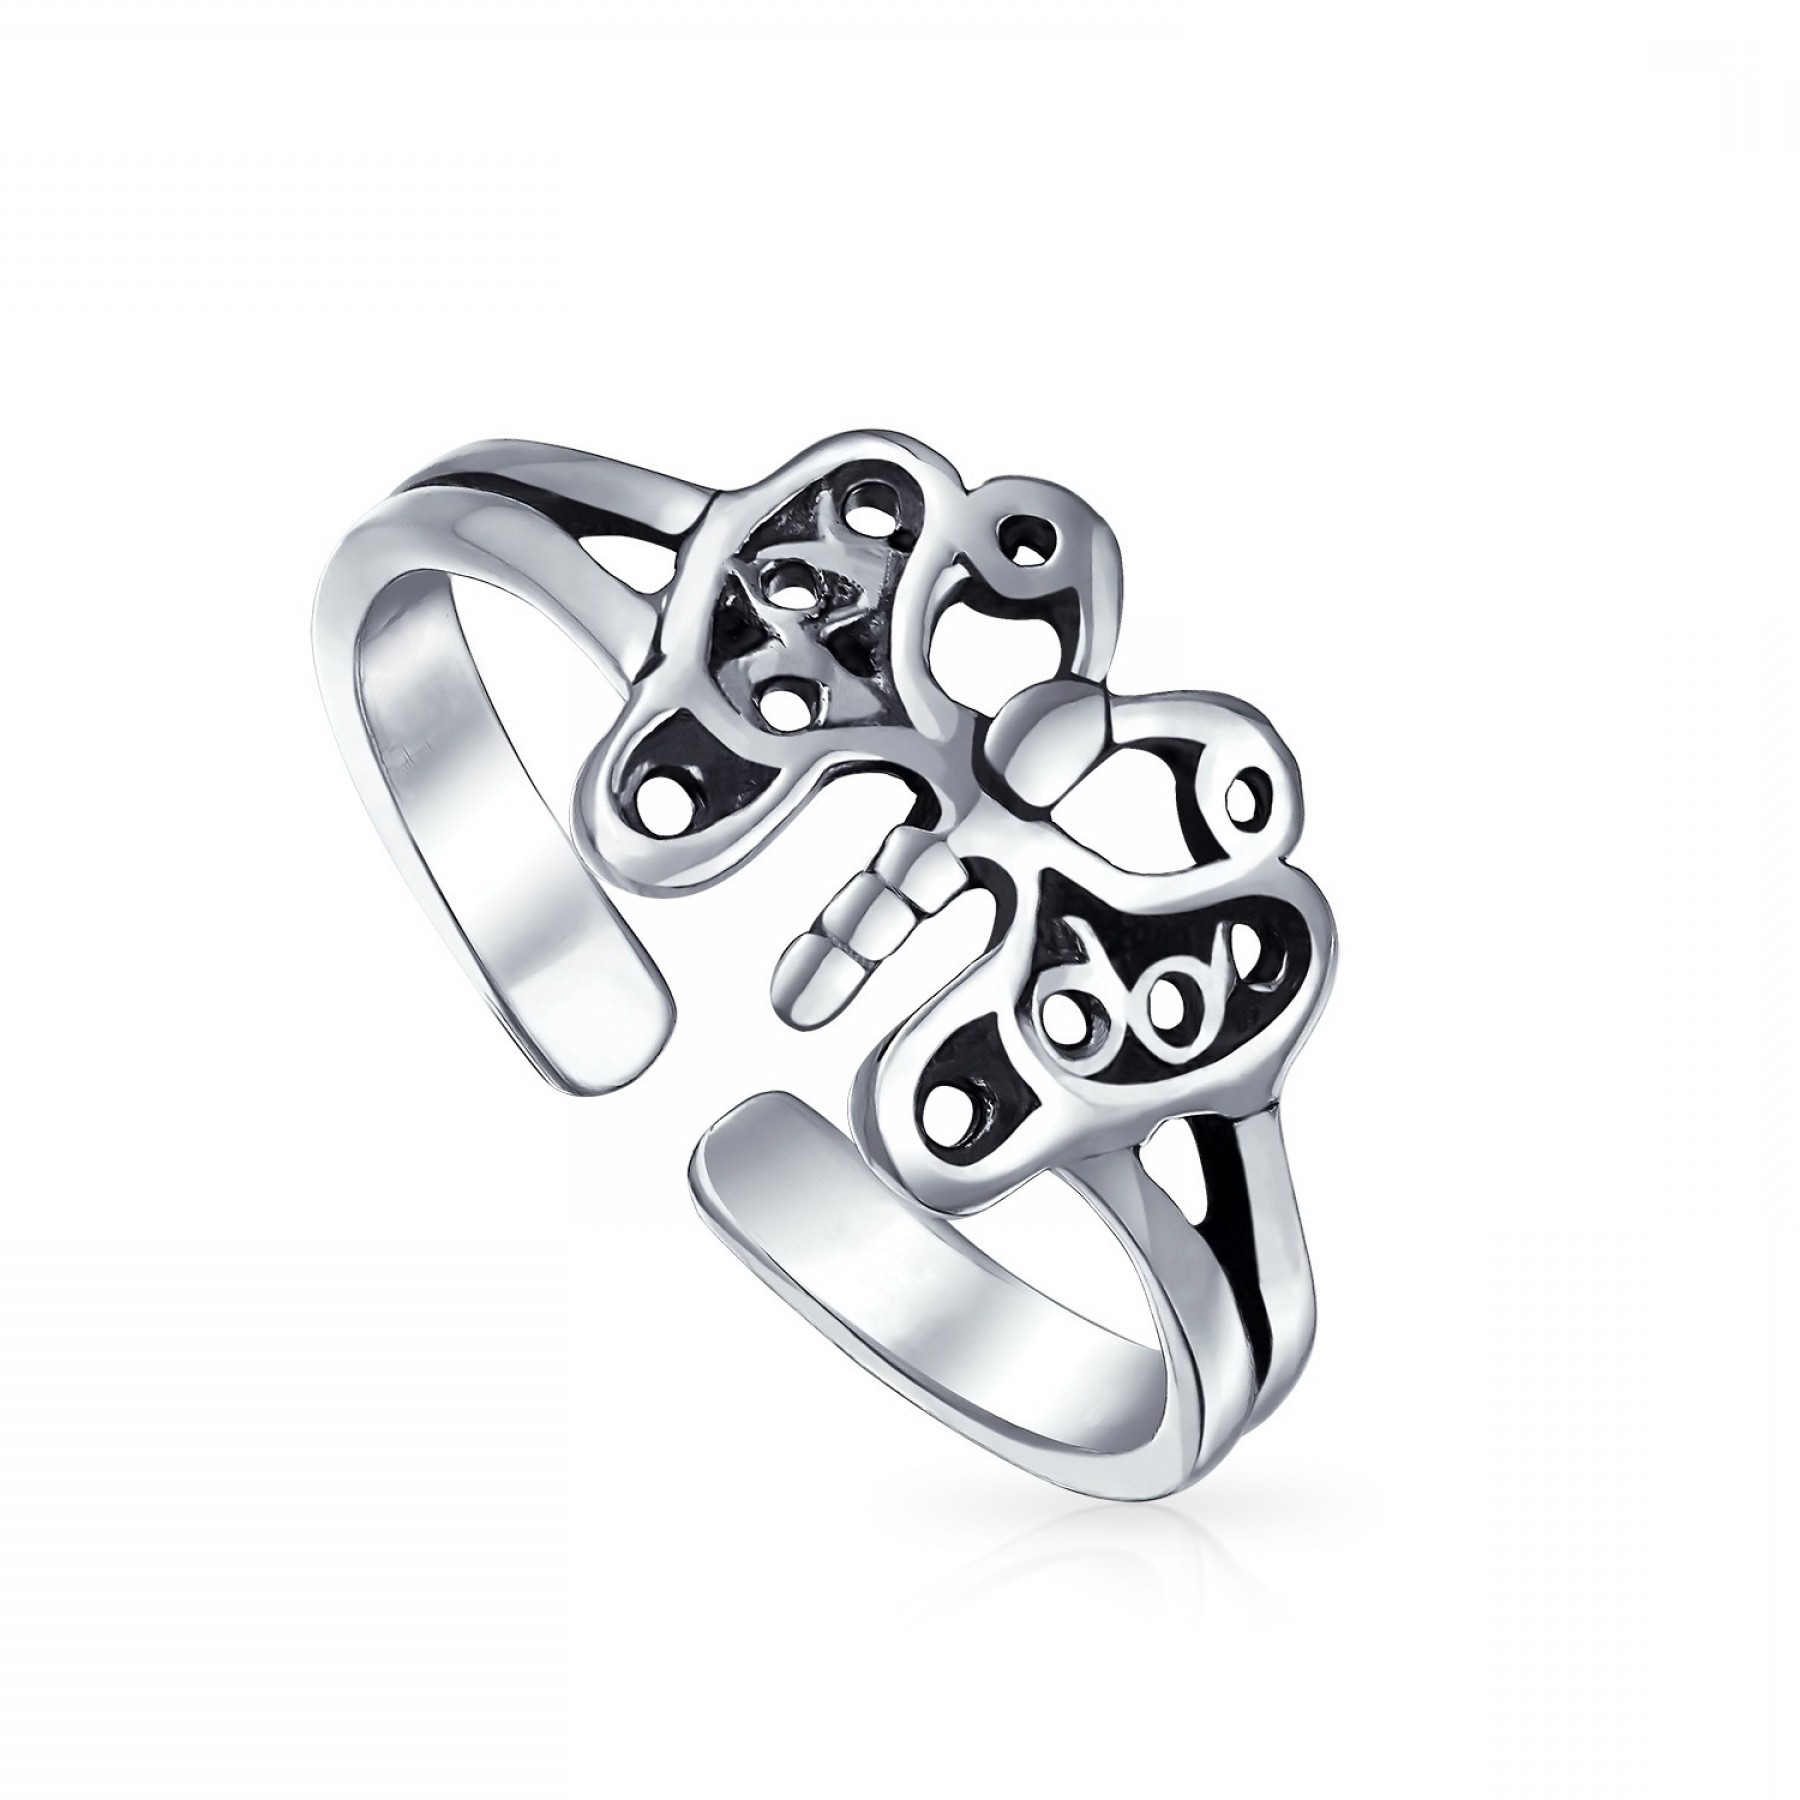 Silver Fancy Filigree Rings | Ksvhs Jewellery Pertaining To Recent Butterfly Toe Rings (View 15 of 15)